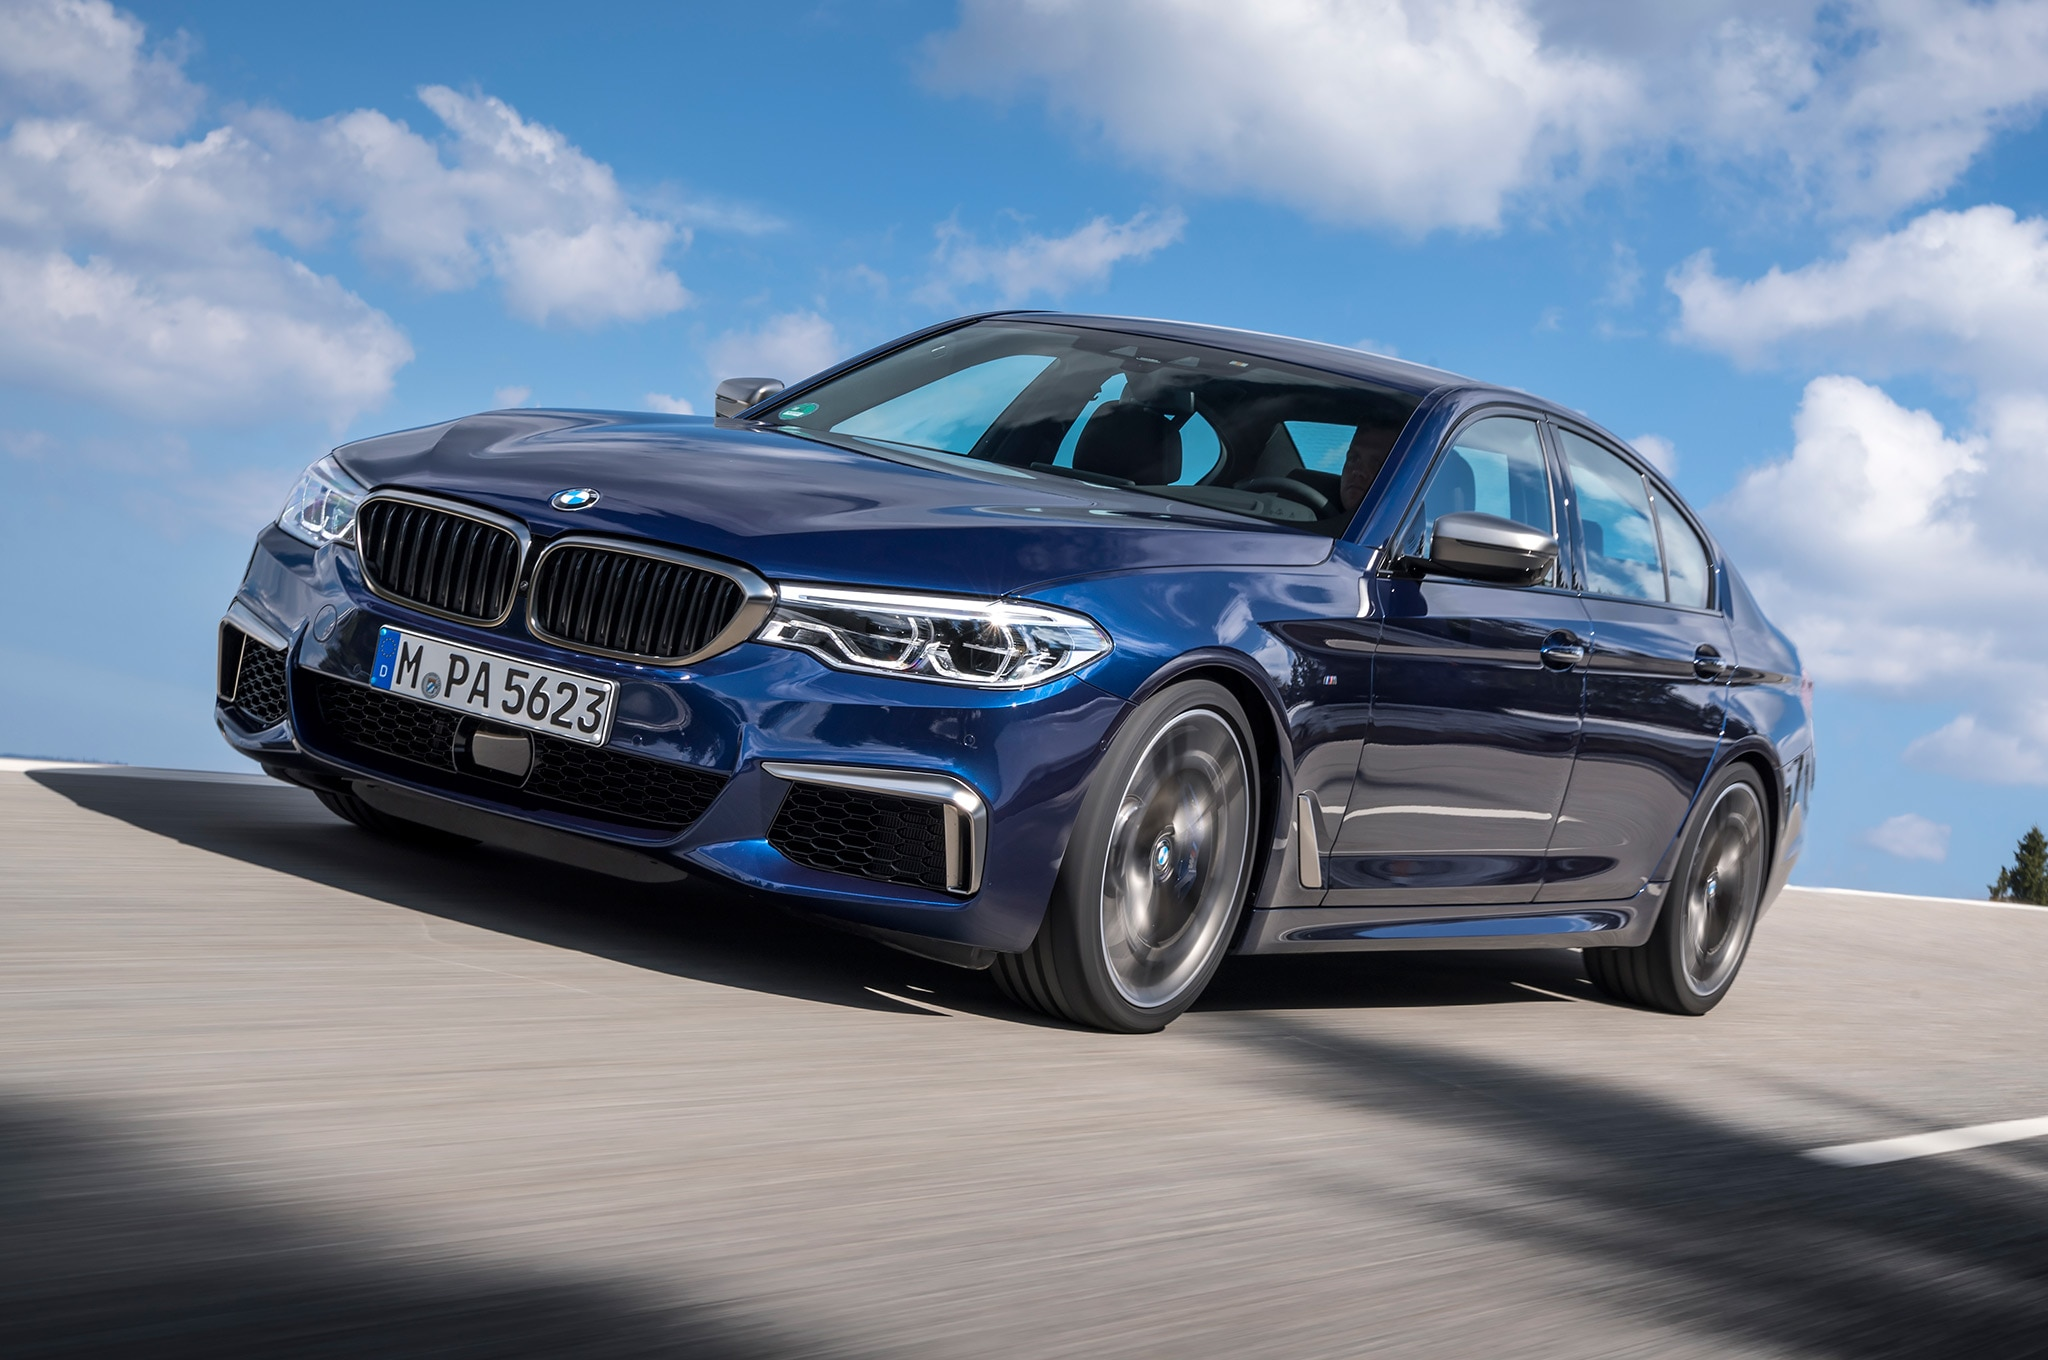 Bmw M5 0 60 >> 2018 BMW M550i xDrive First Drive Review | Automobile Magazine